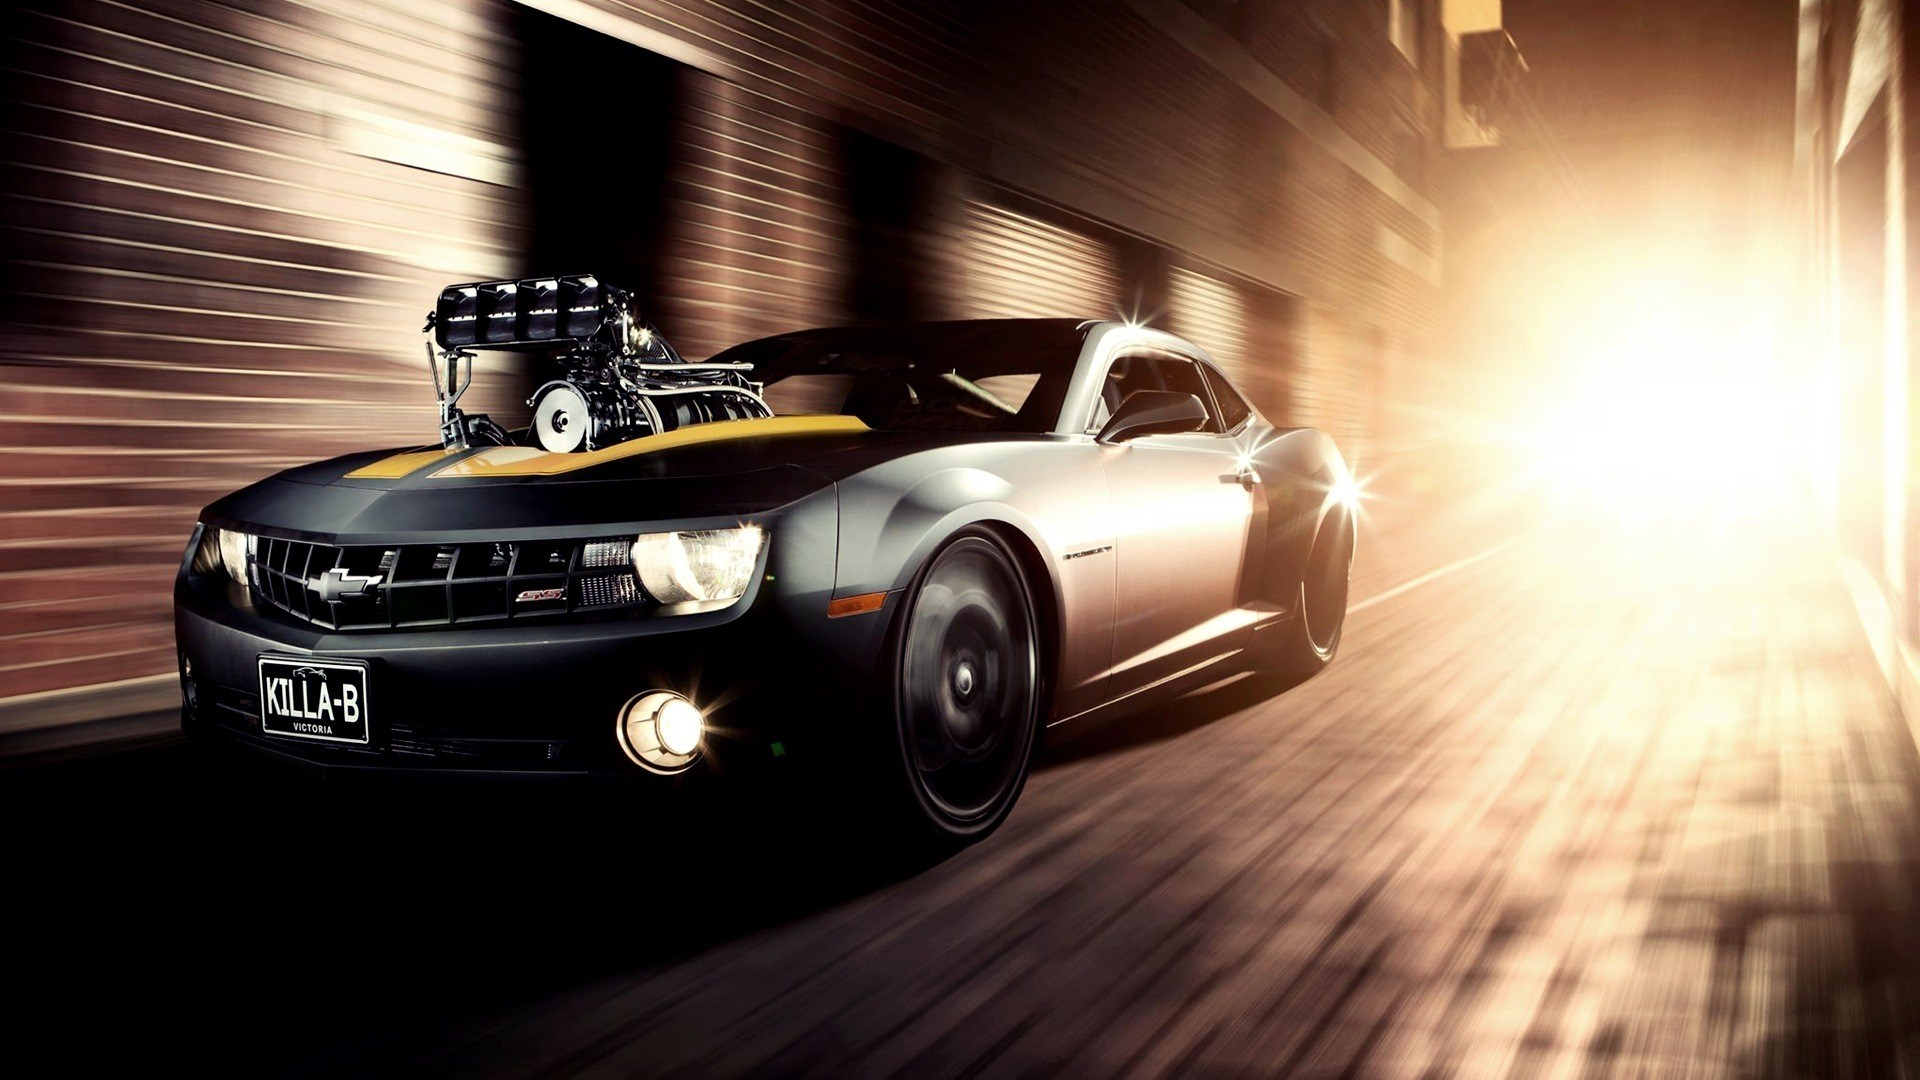 Chevrolet Camaro Ss Concept Muscle Car Wallpaper PIC MCH052220